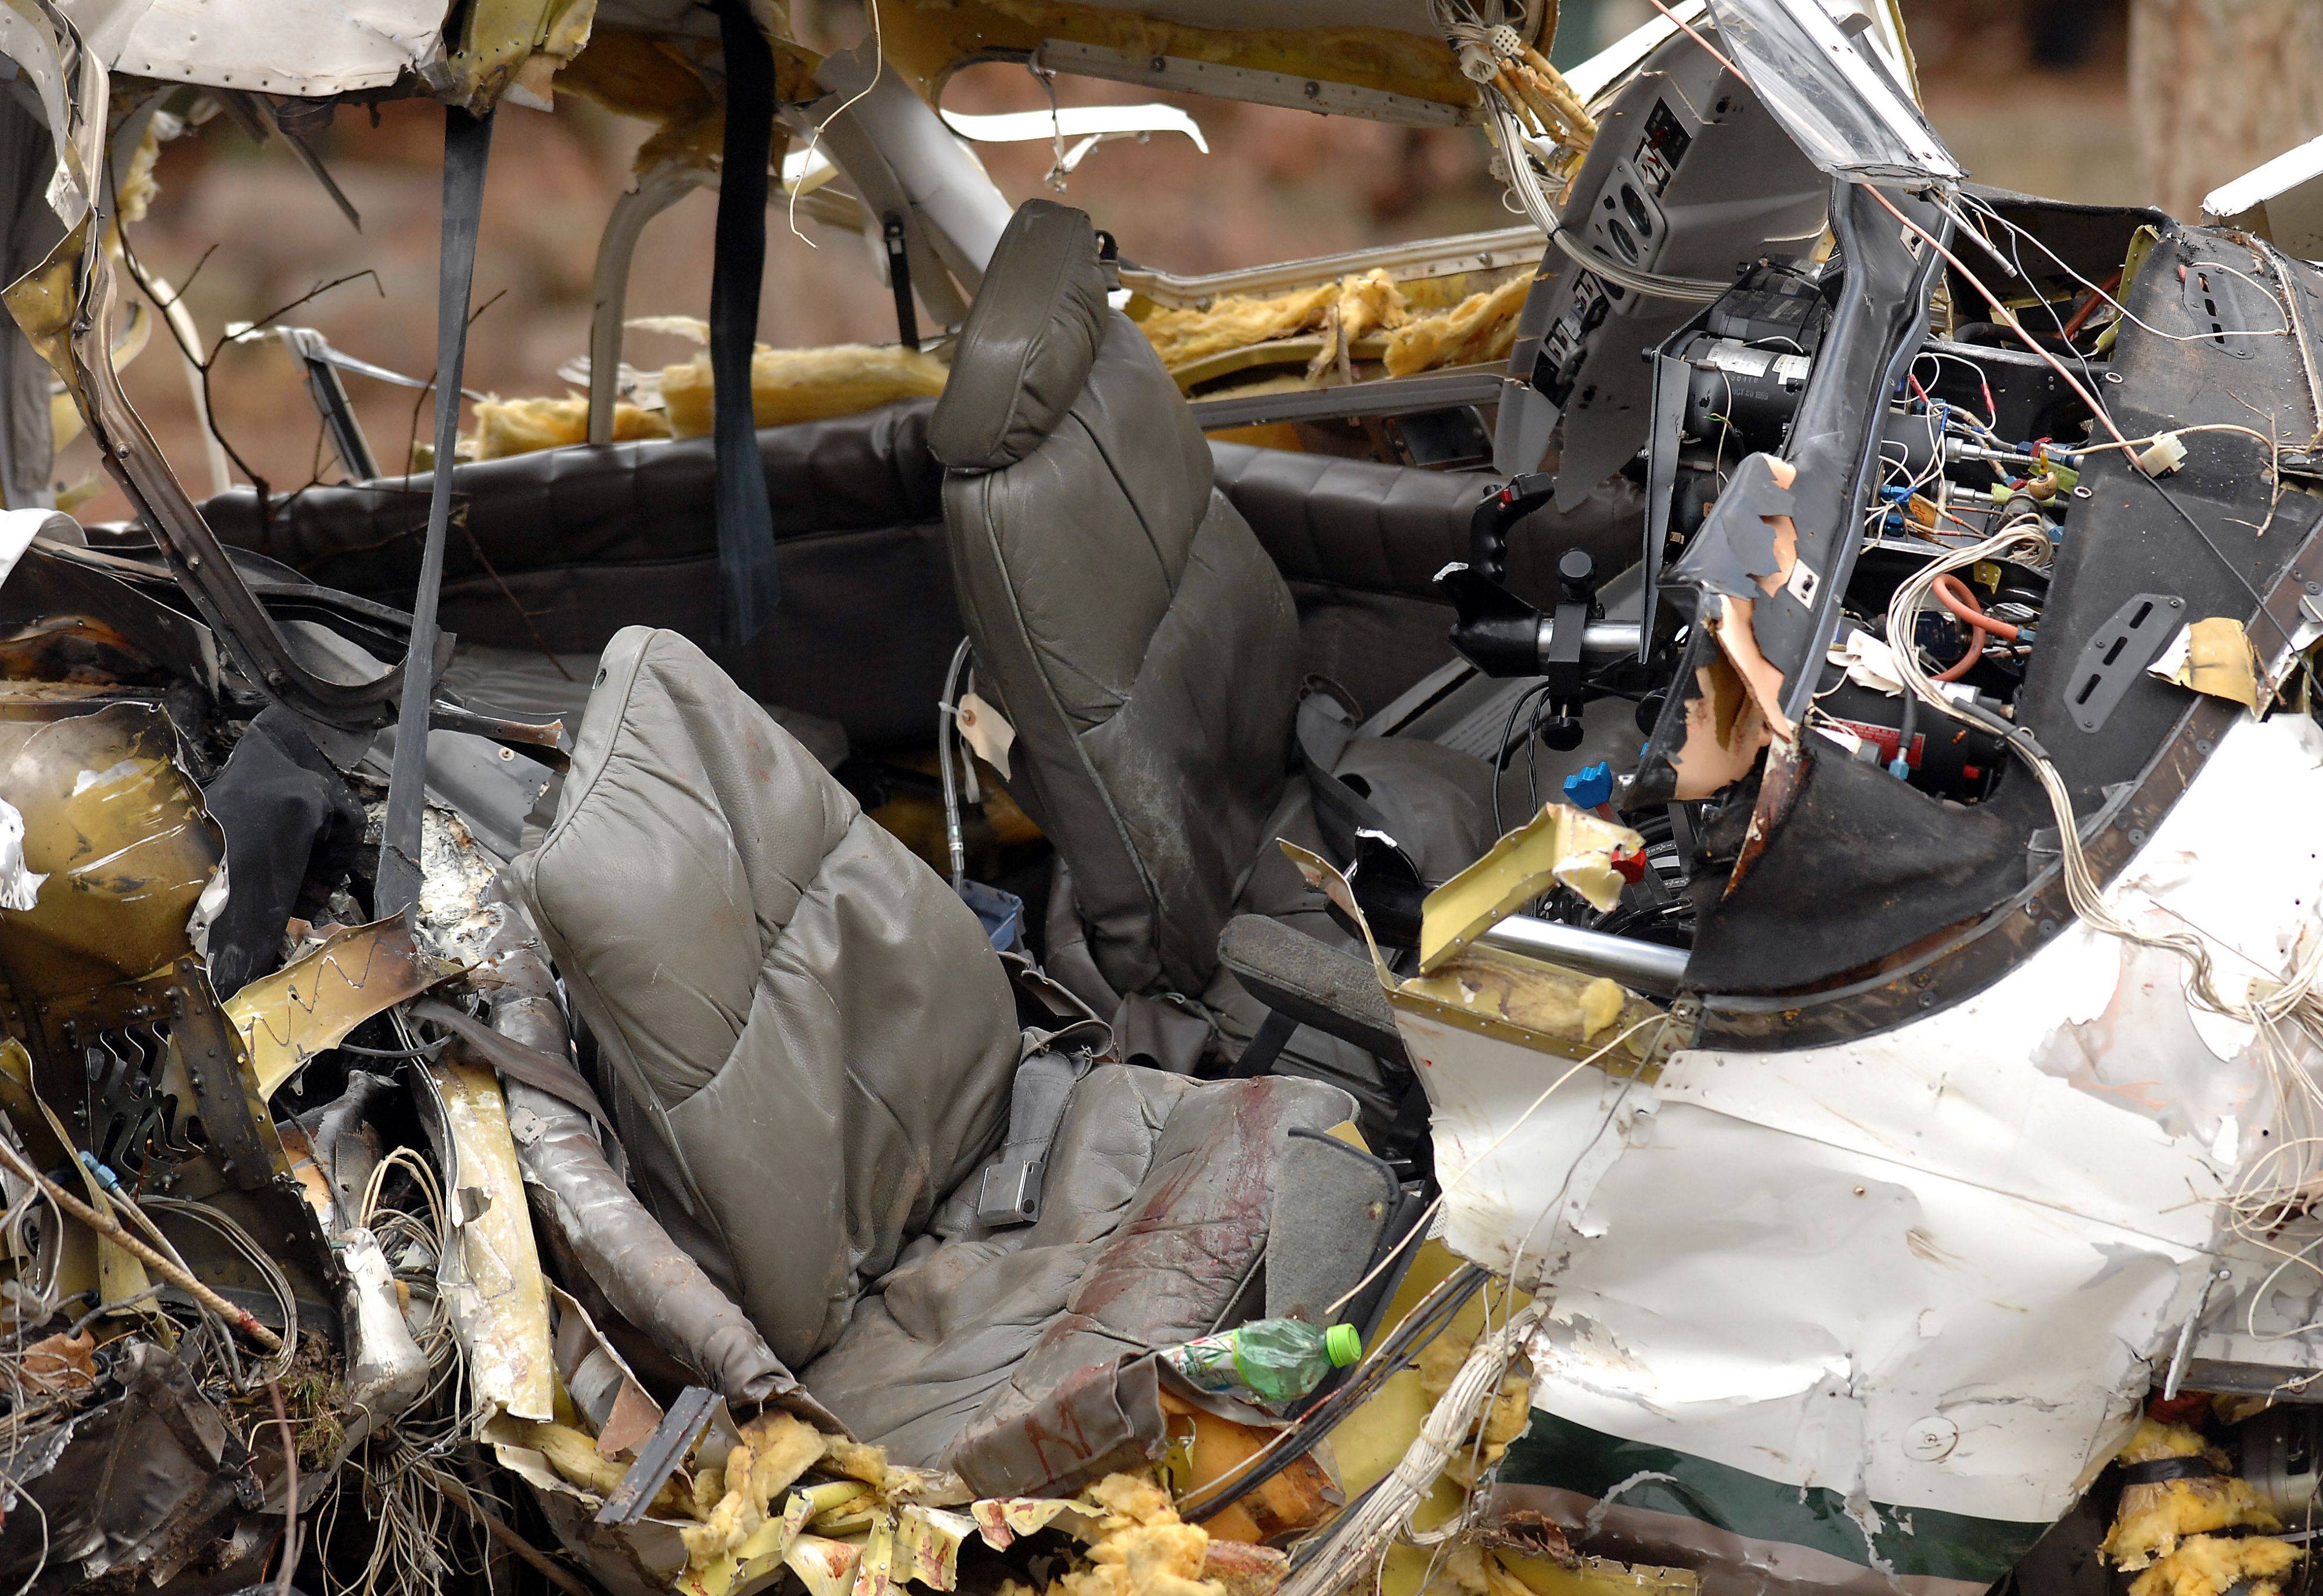 The pilot and co-pilot seats inside the wreckage of the plane that crashed in Riverwoods Monday night.